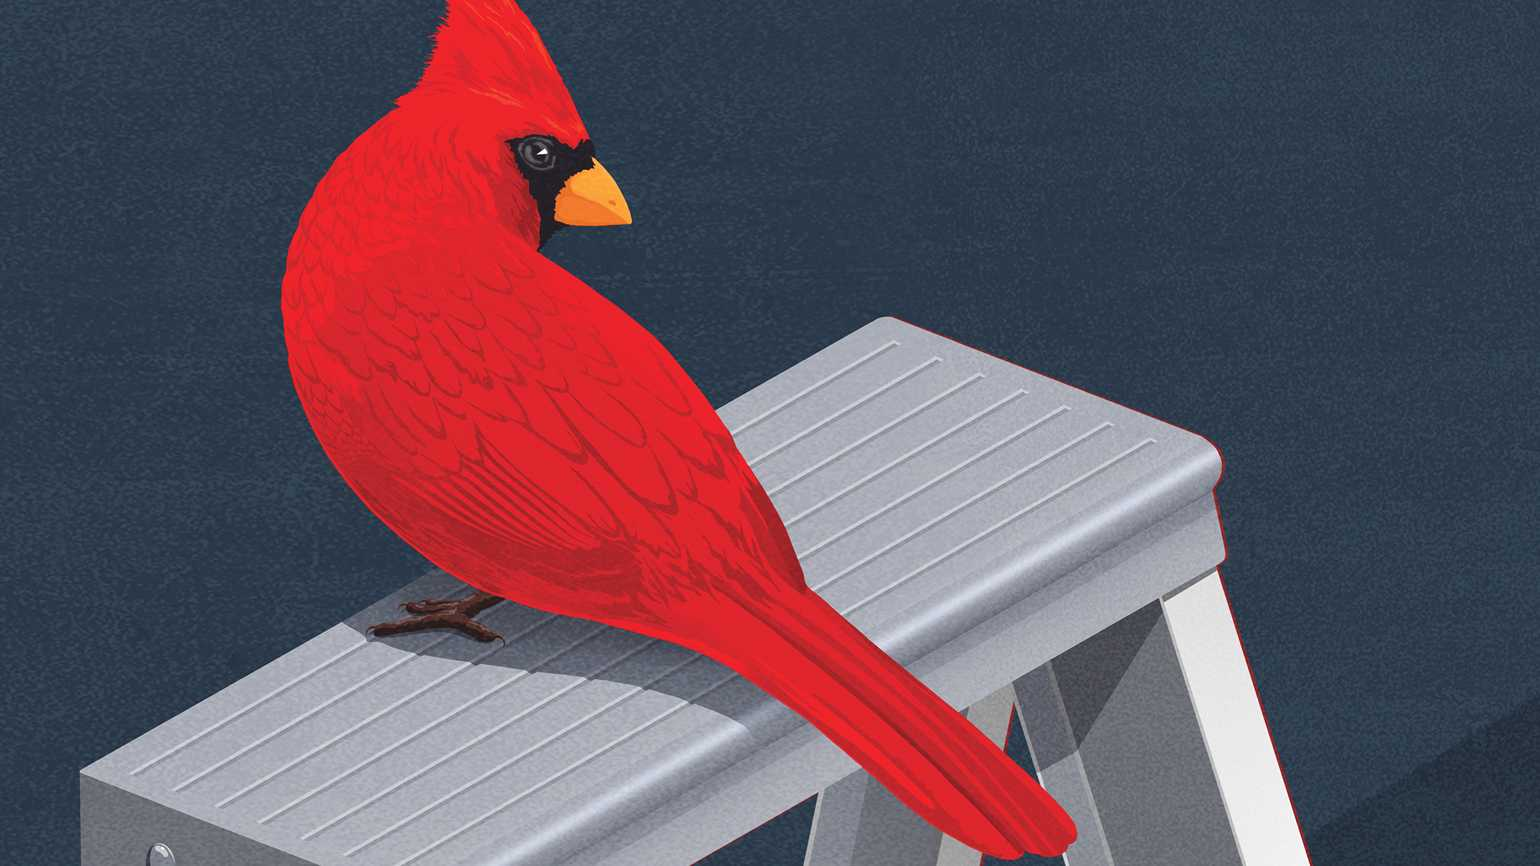 A Cardinal perched on top of a ladder; Illustration by Michael Glenwood